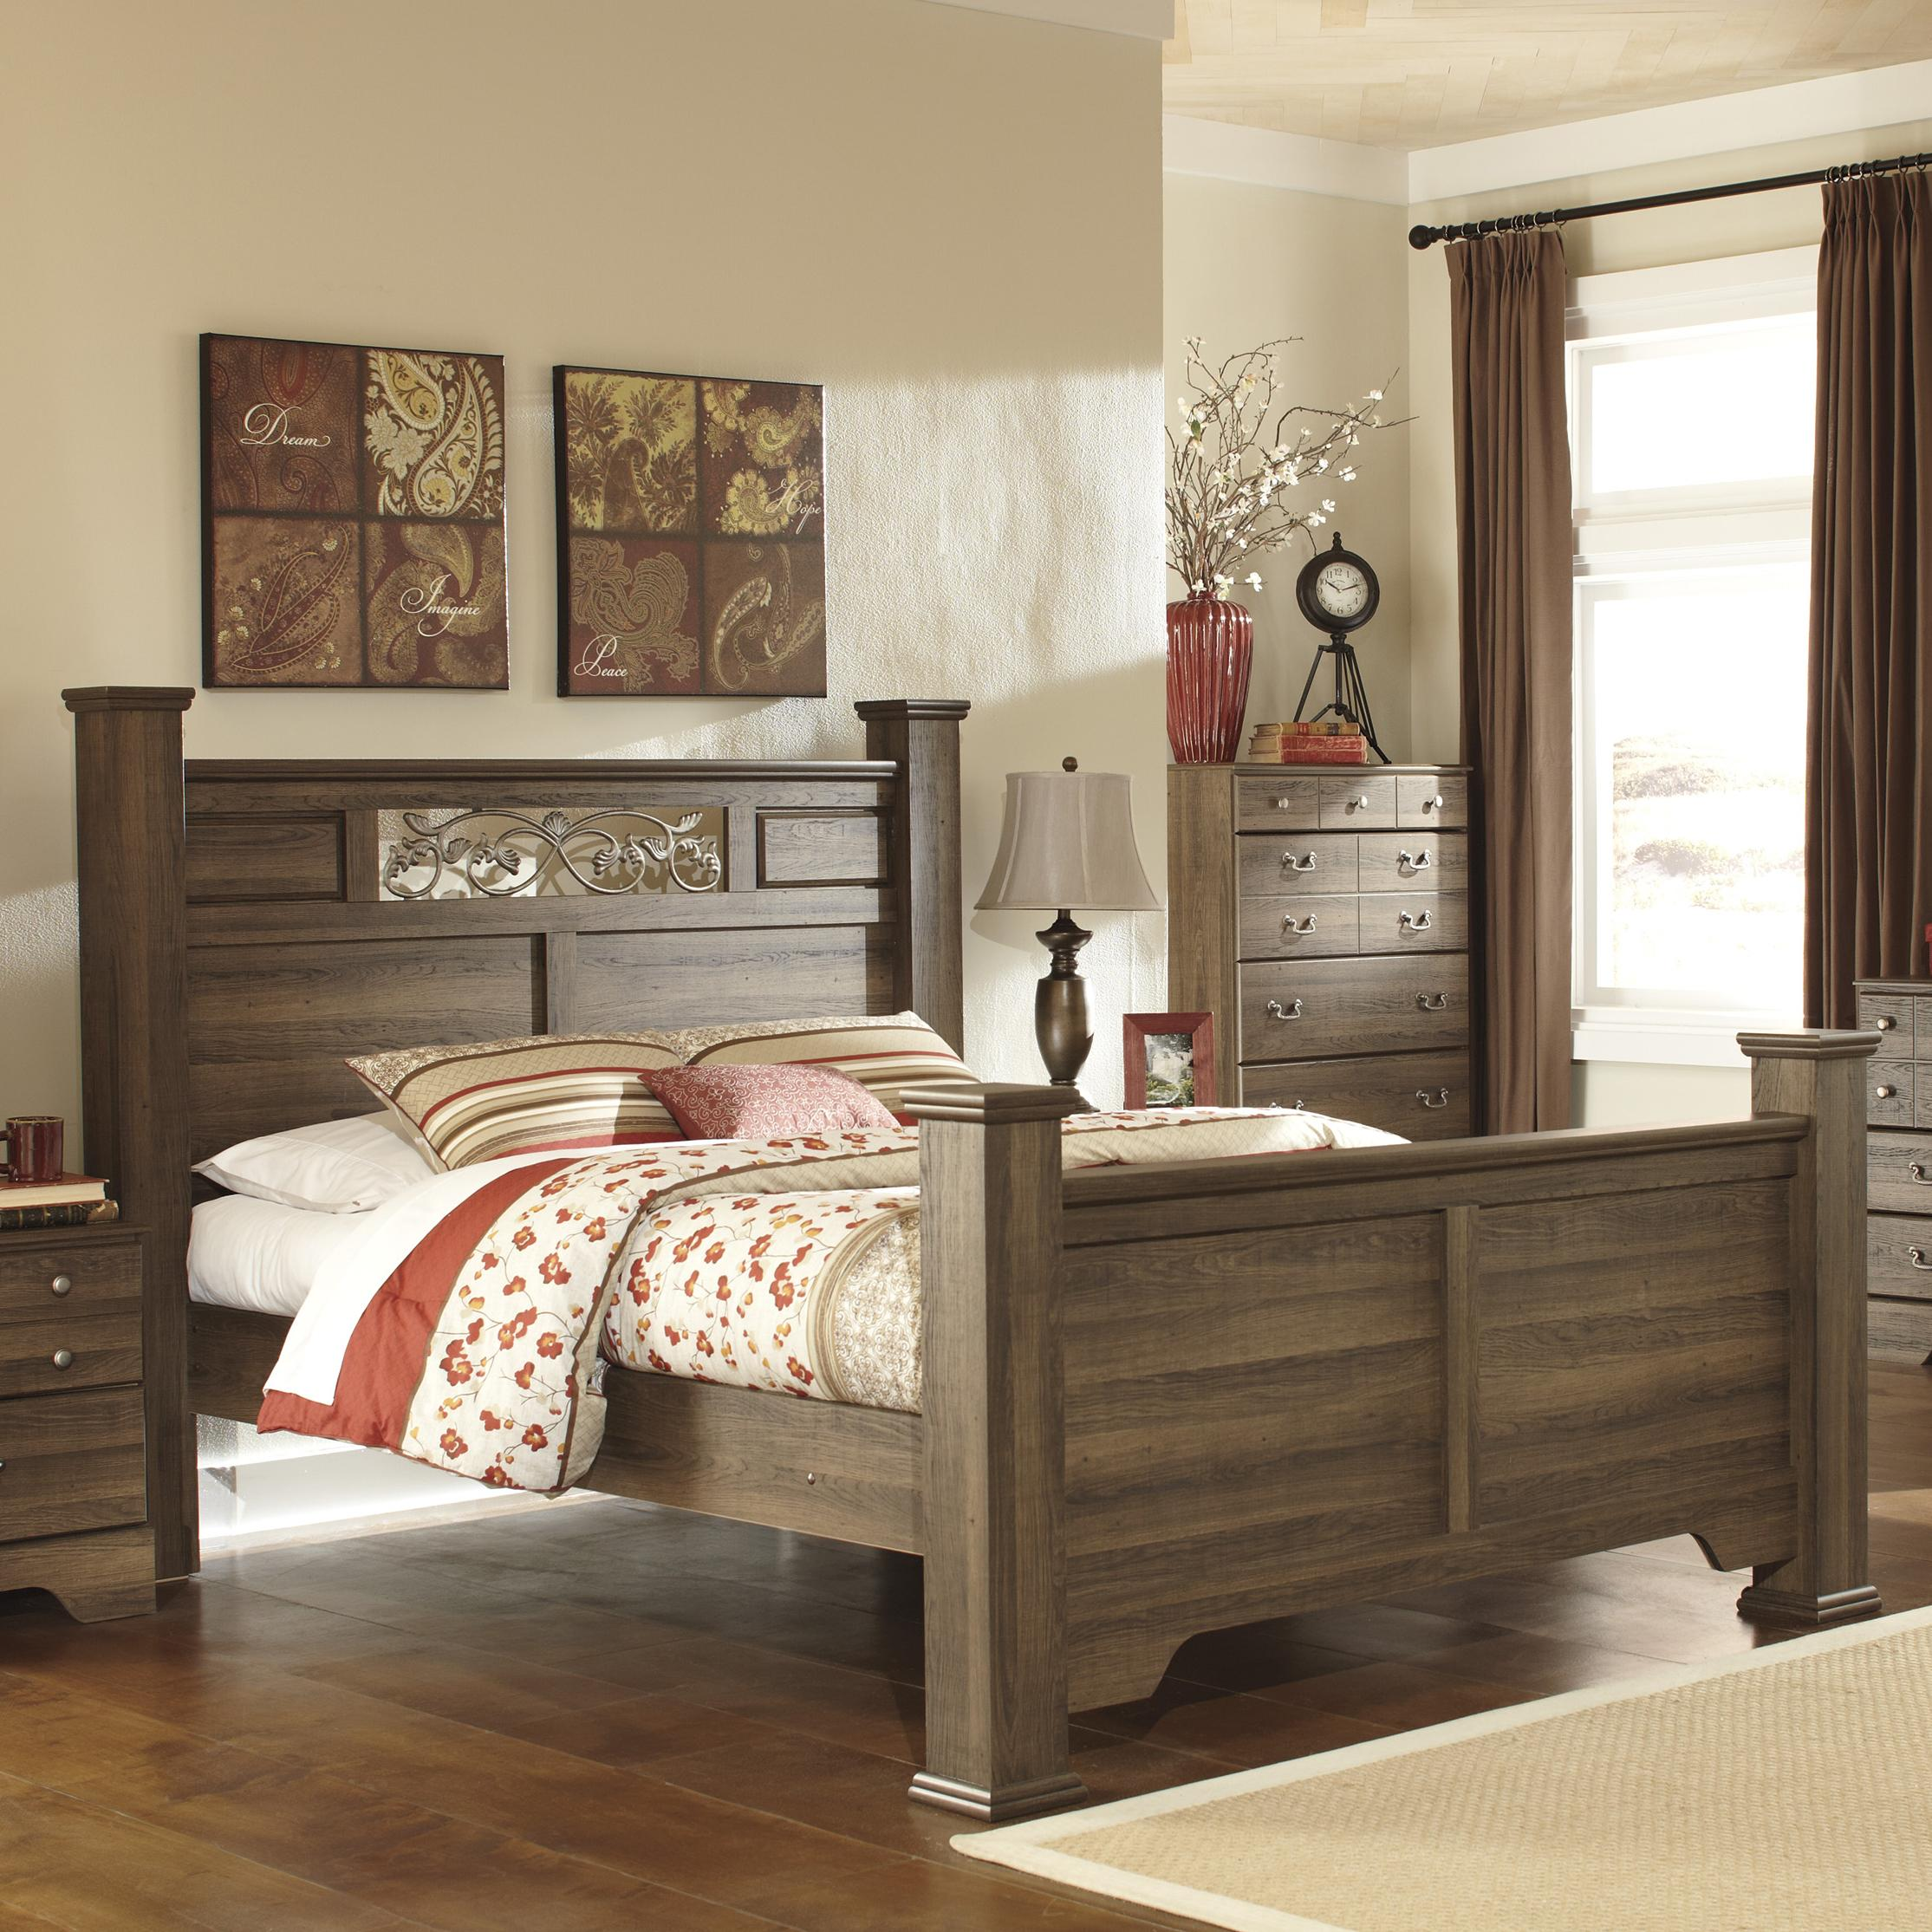 Allymore Queen Poster Bed With Scrolled Accents At Del Sol Furniture